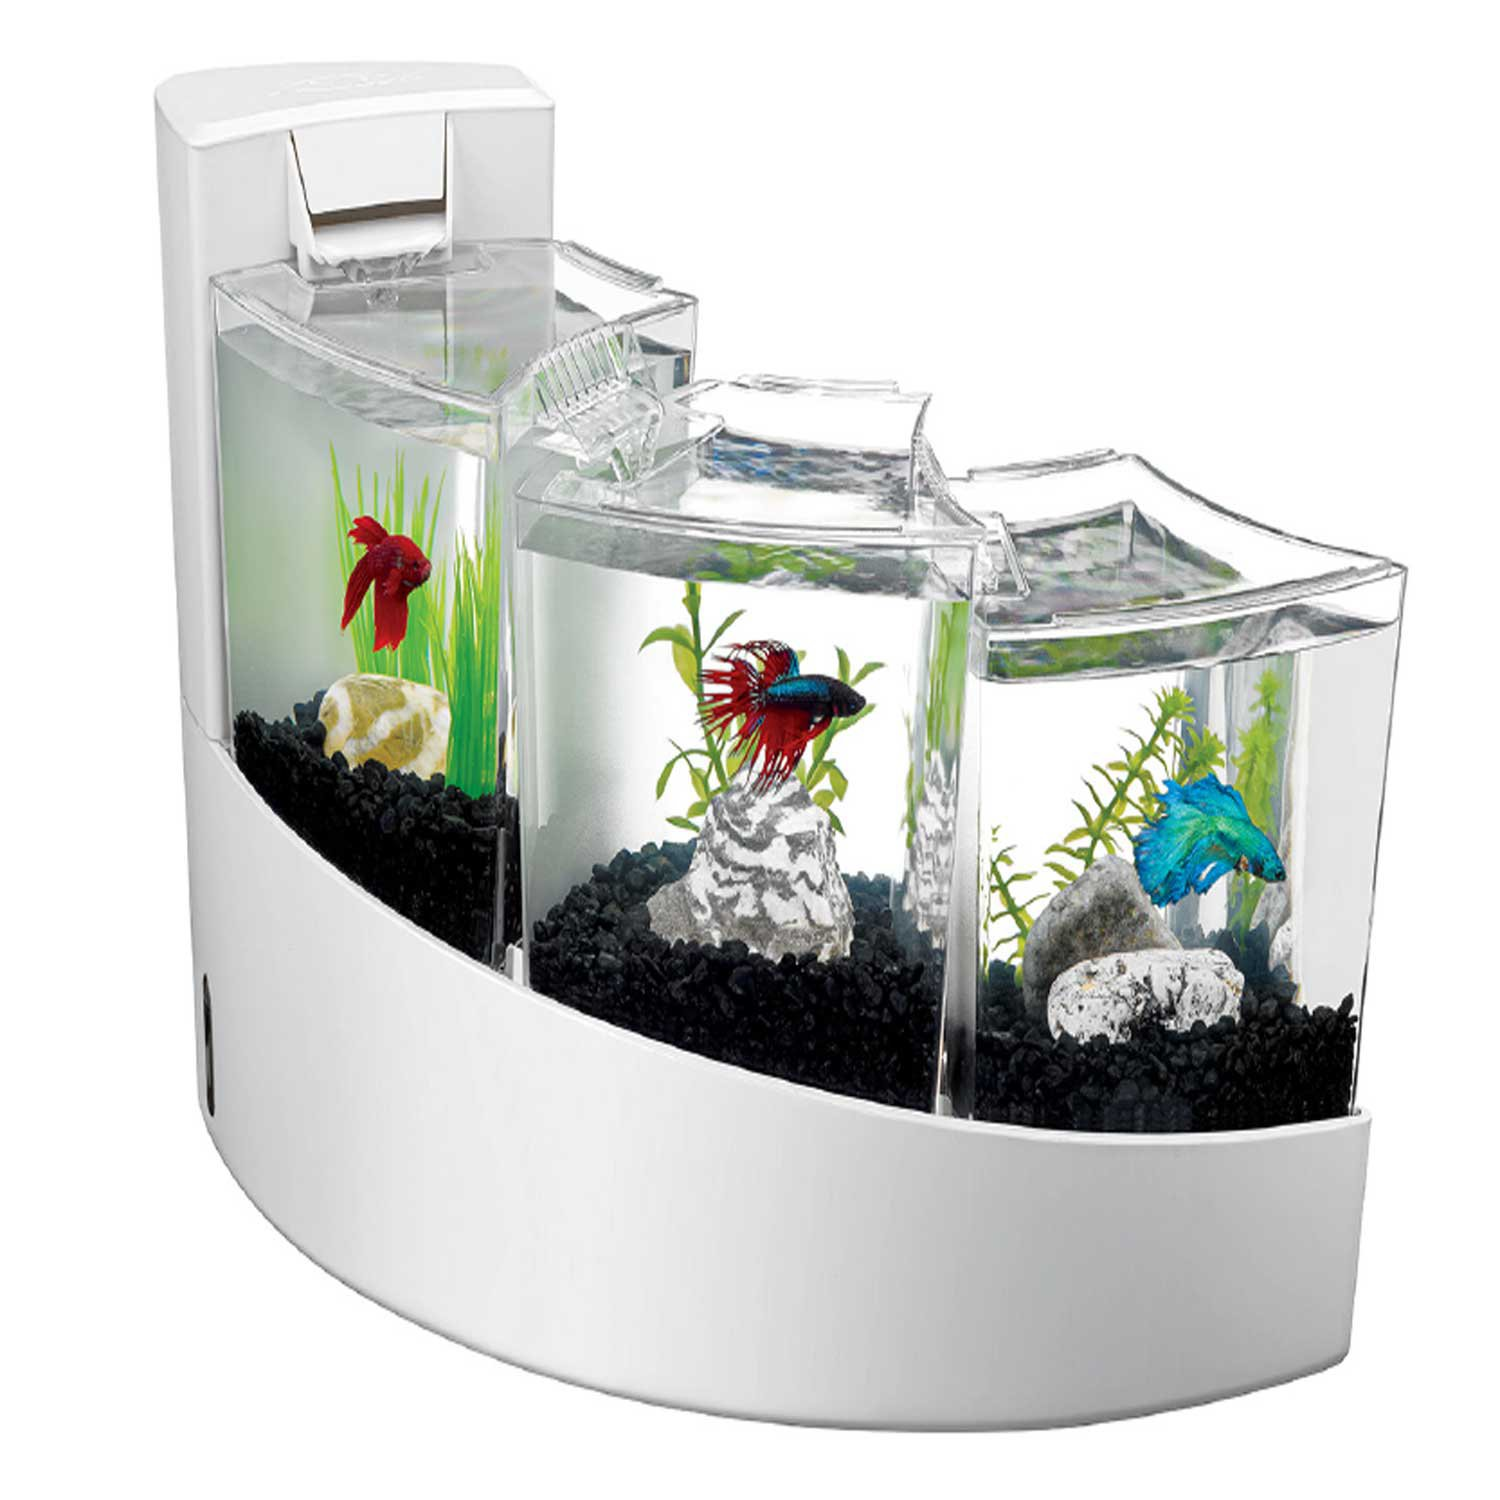 Aqueon betta falls aquarium kit in white petco for Small fish tanks for sale